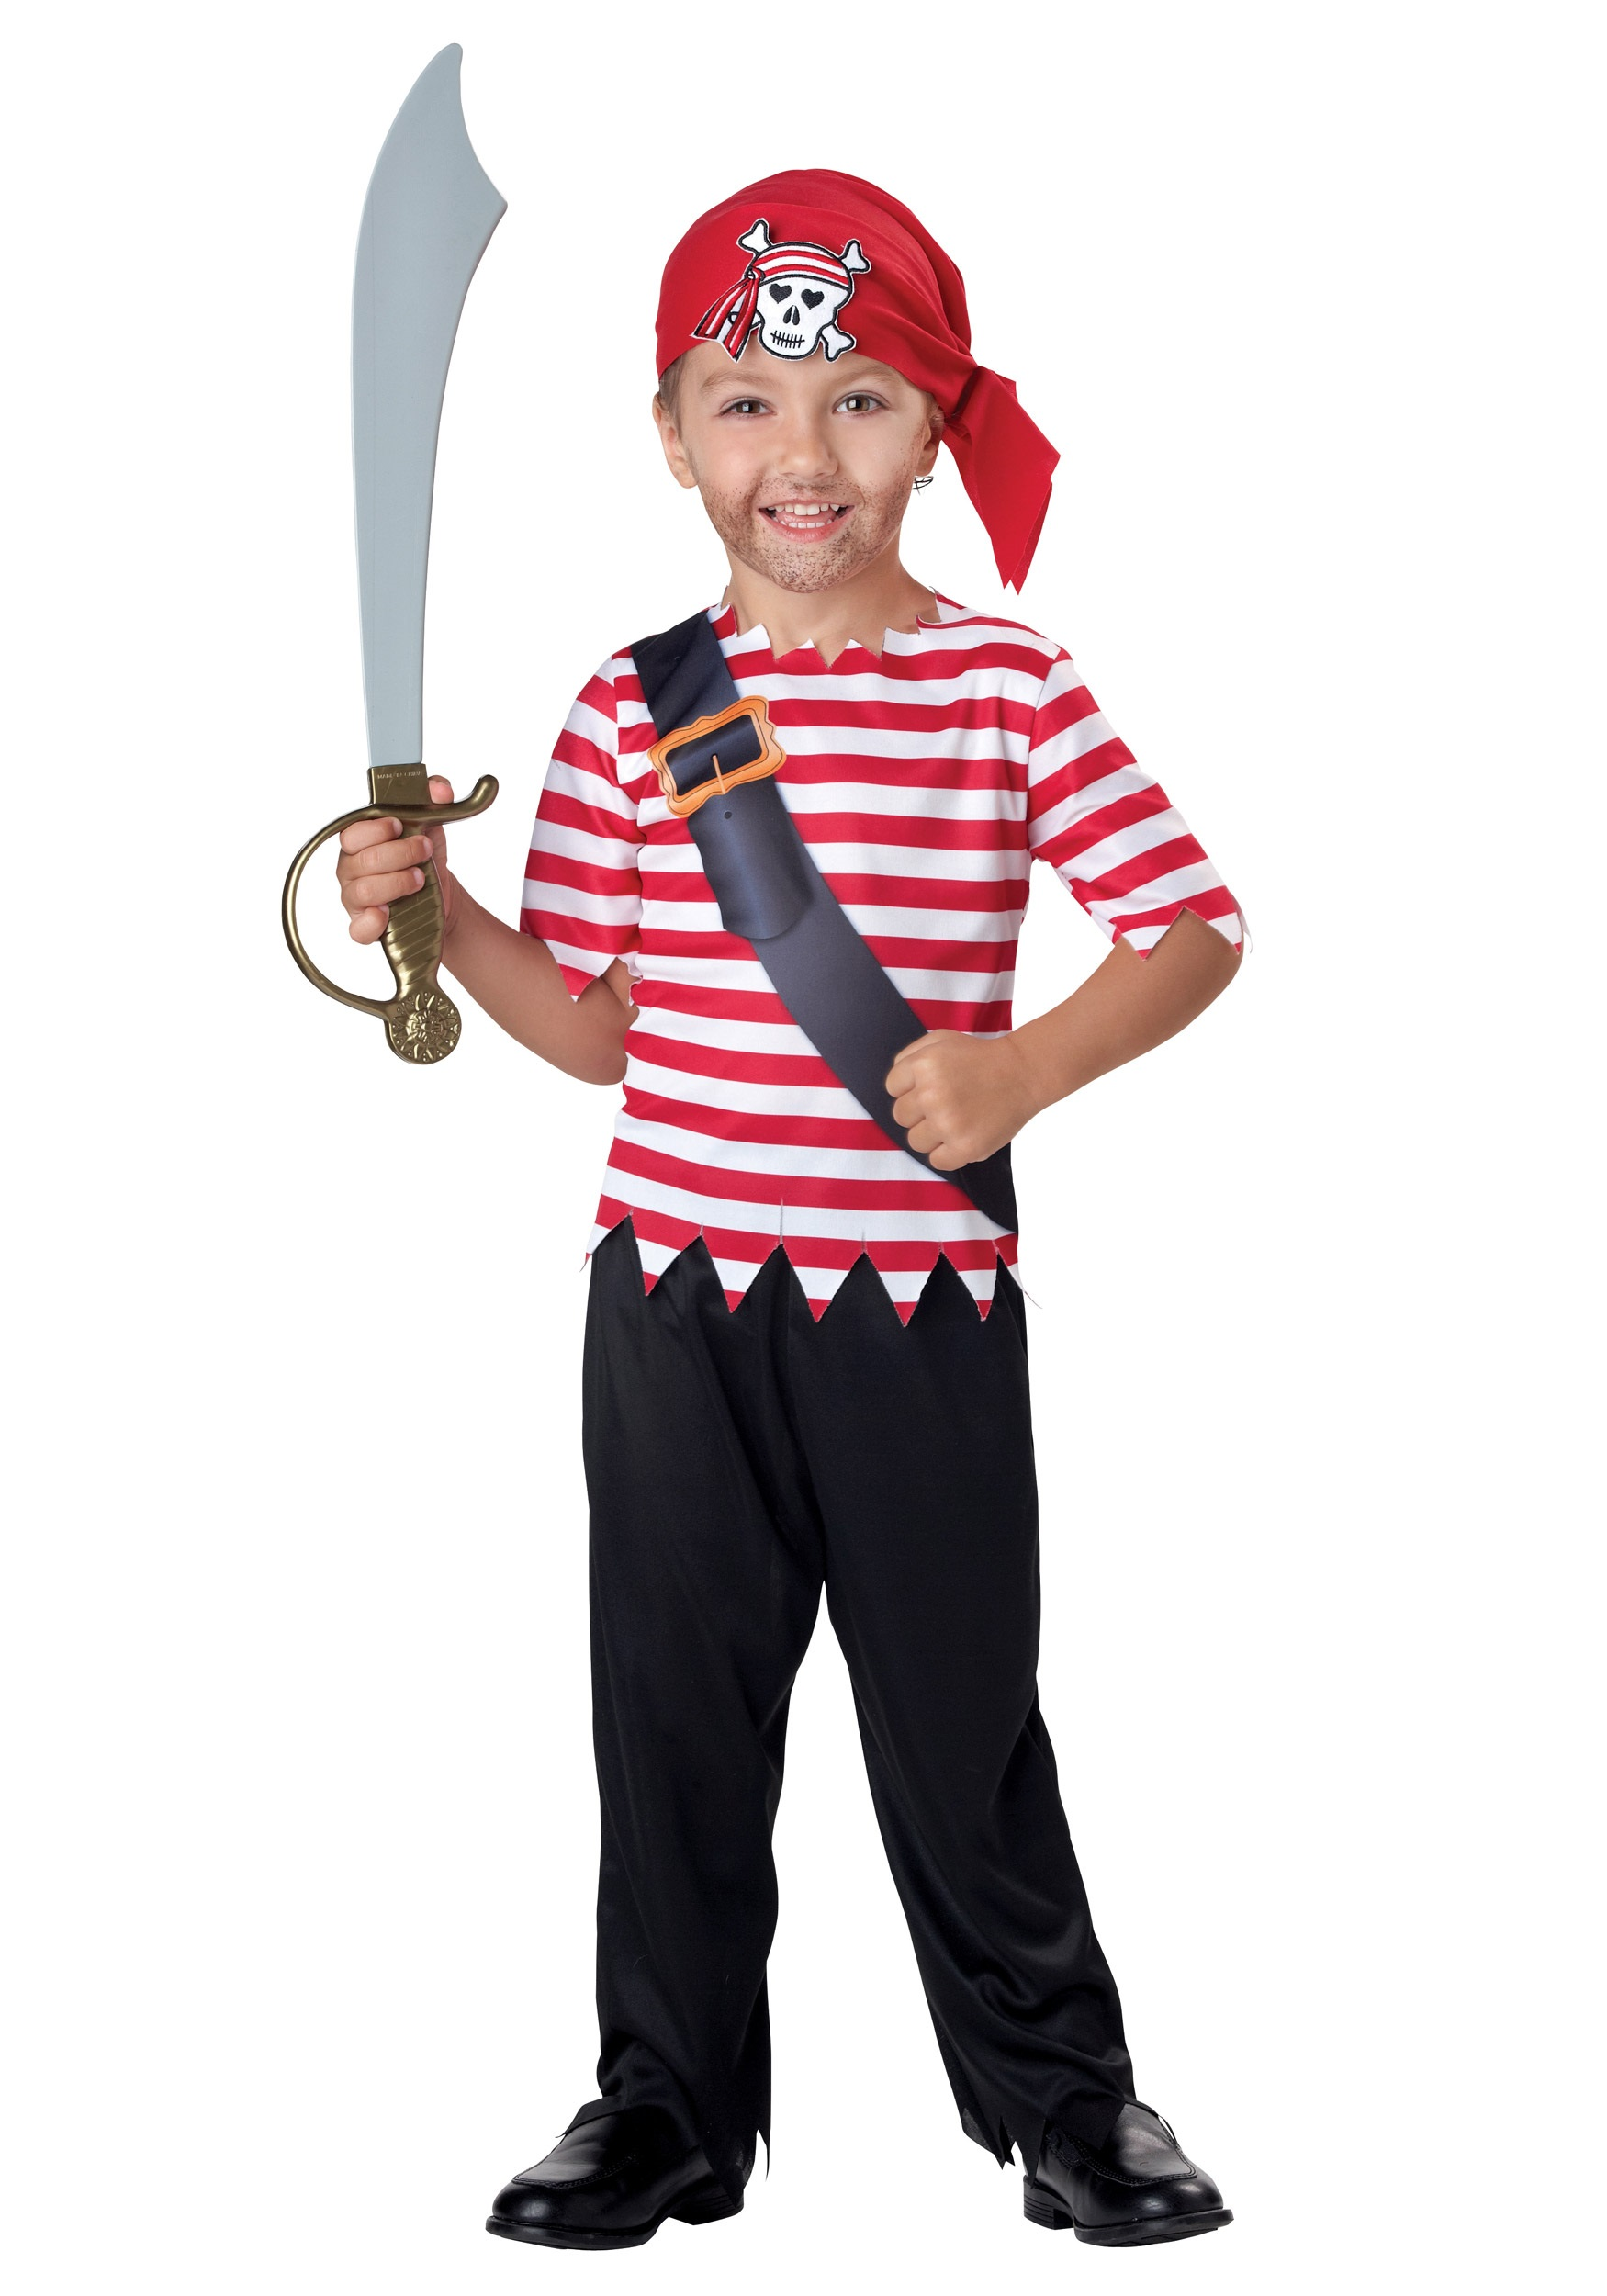 Toddler Pirate Costume  sc 1 st  Halloween Costumes & Toddler Pirate Costume - Halloween Costumes